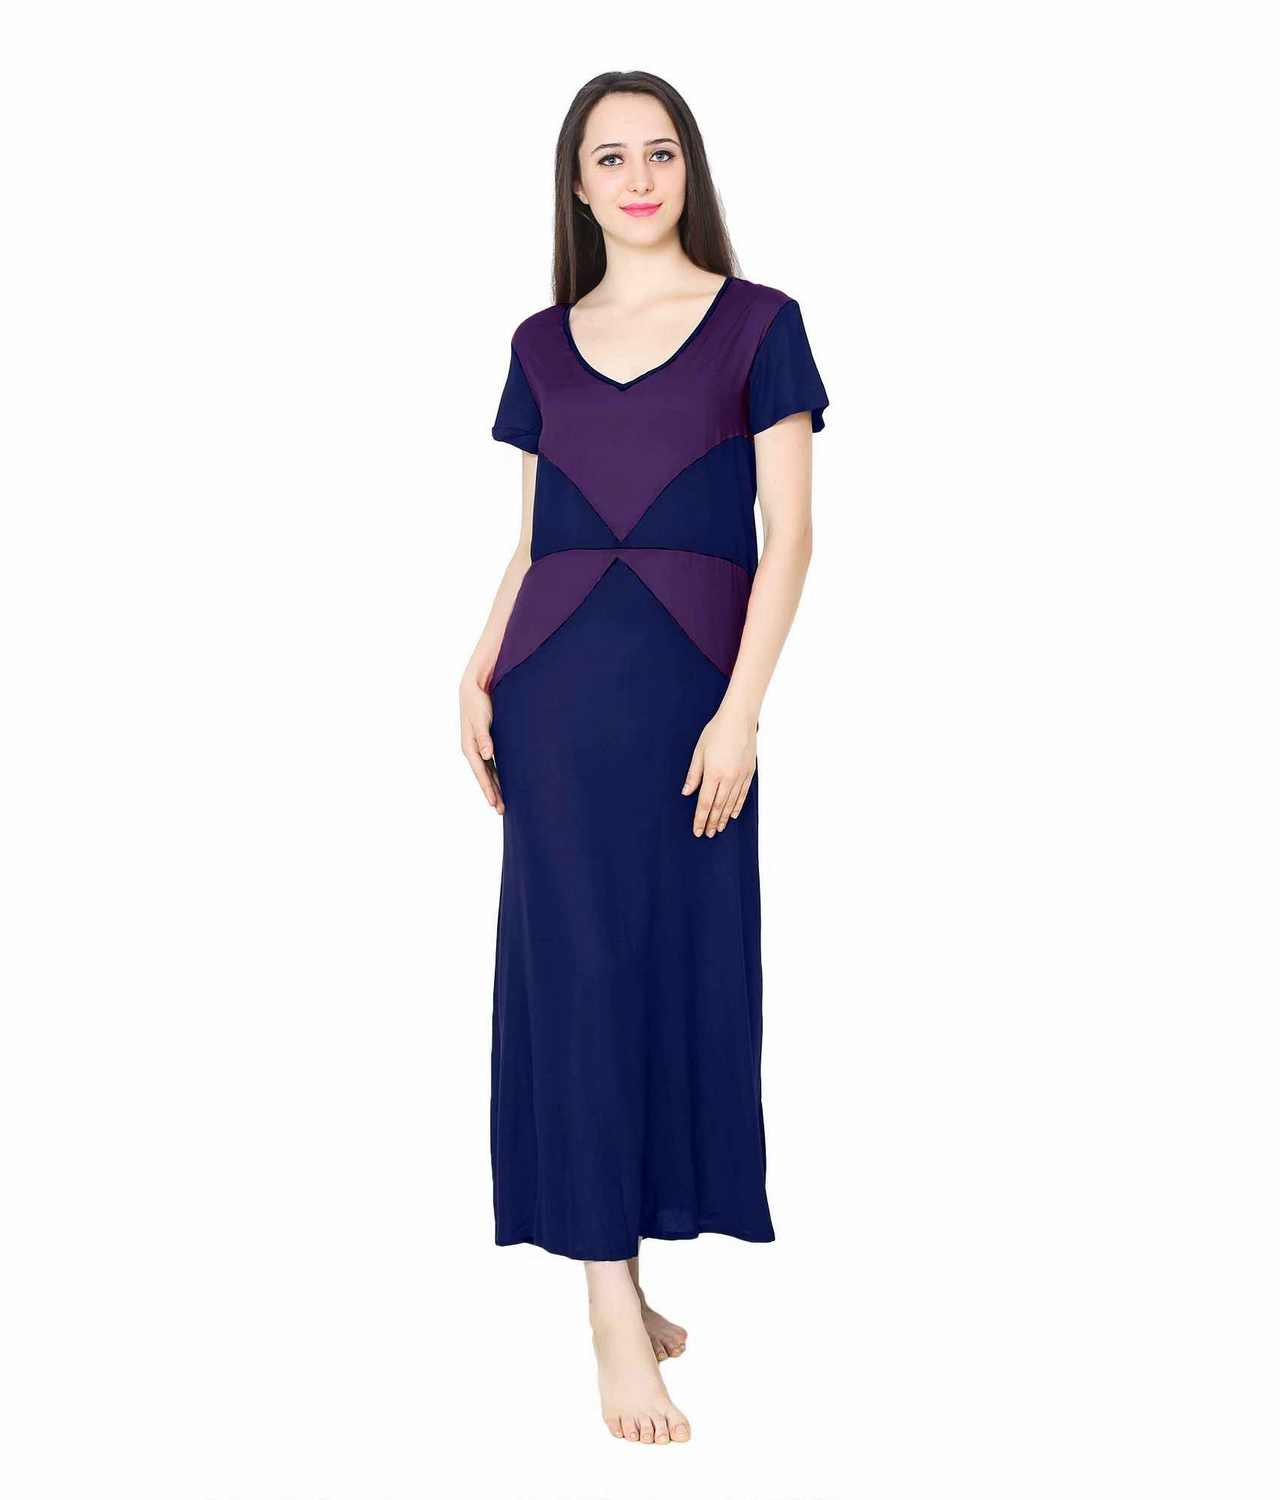 Color Block Maxi Night-Gown Nighty in Royal Blue: Purple